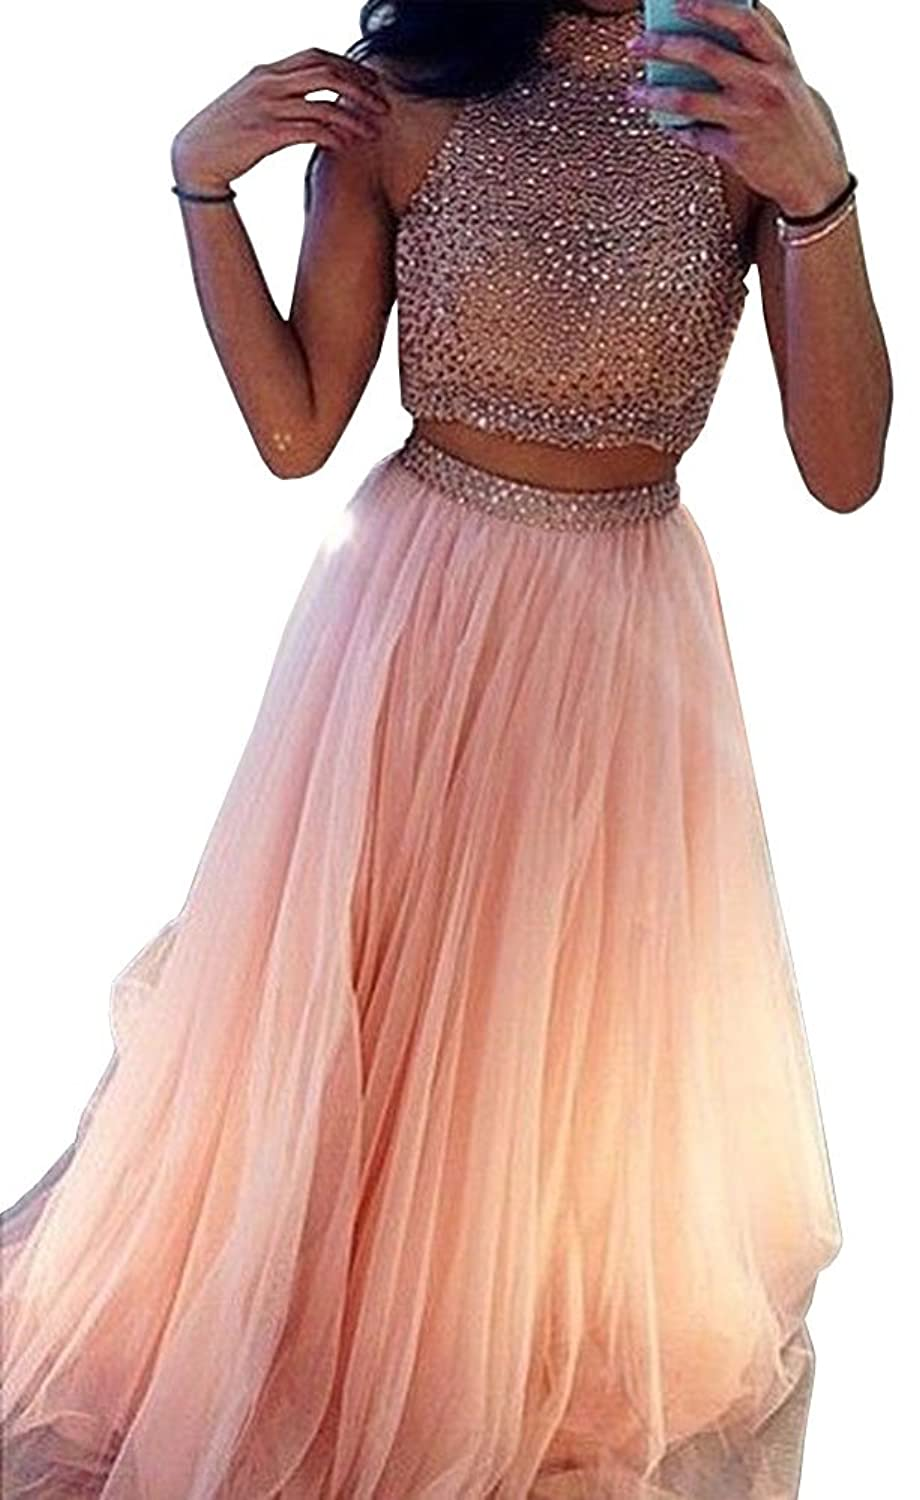 Amazon.com: Lovelybride Charming Halter 2 Piece Beaded Tulle Prom Dress Long Evening Party Gown: Clothing